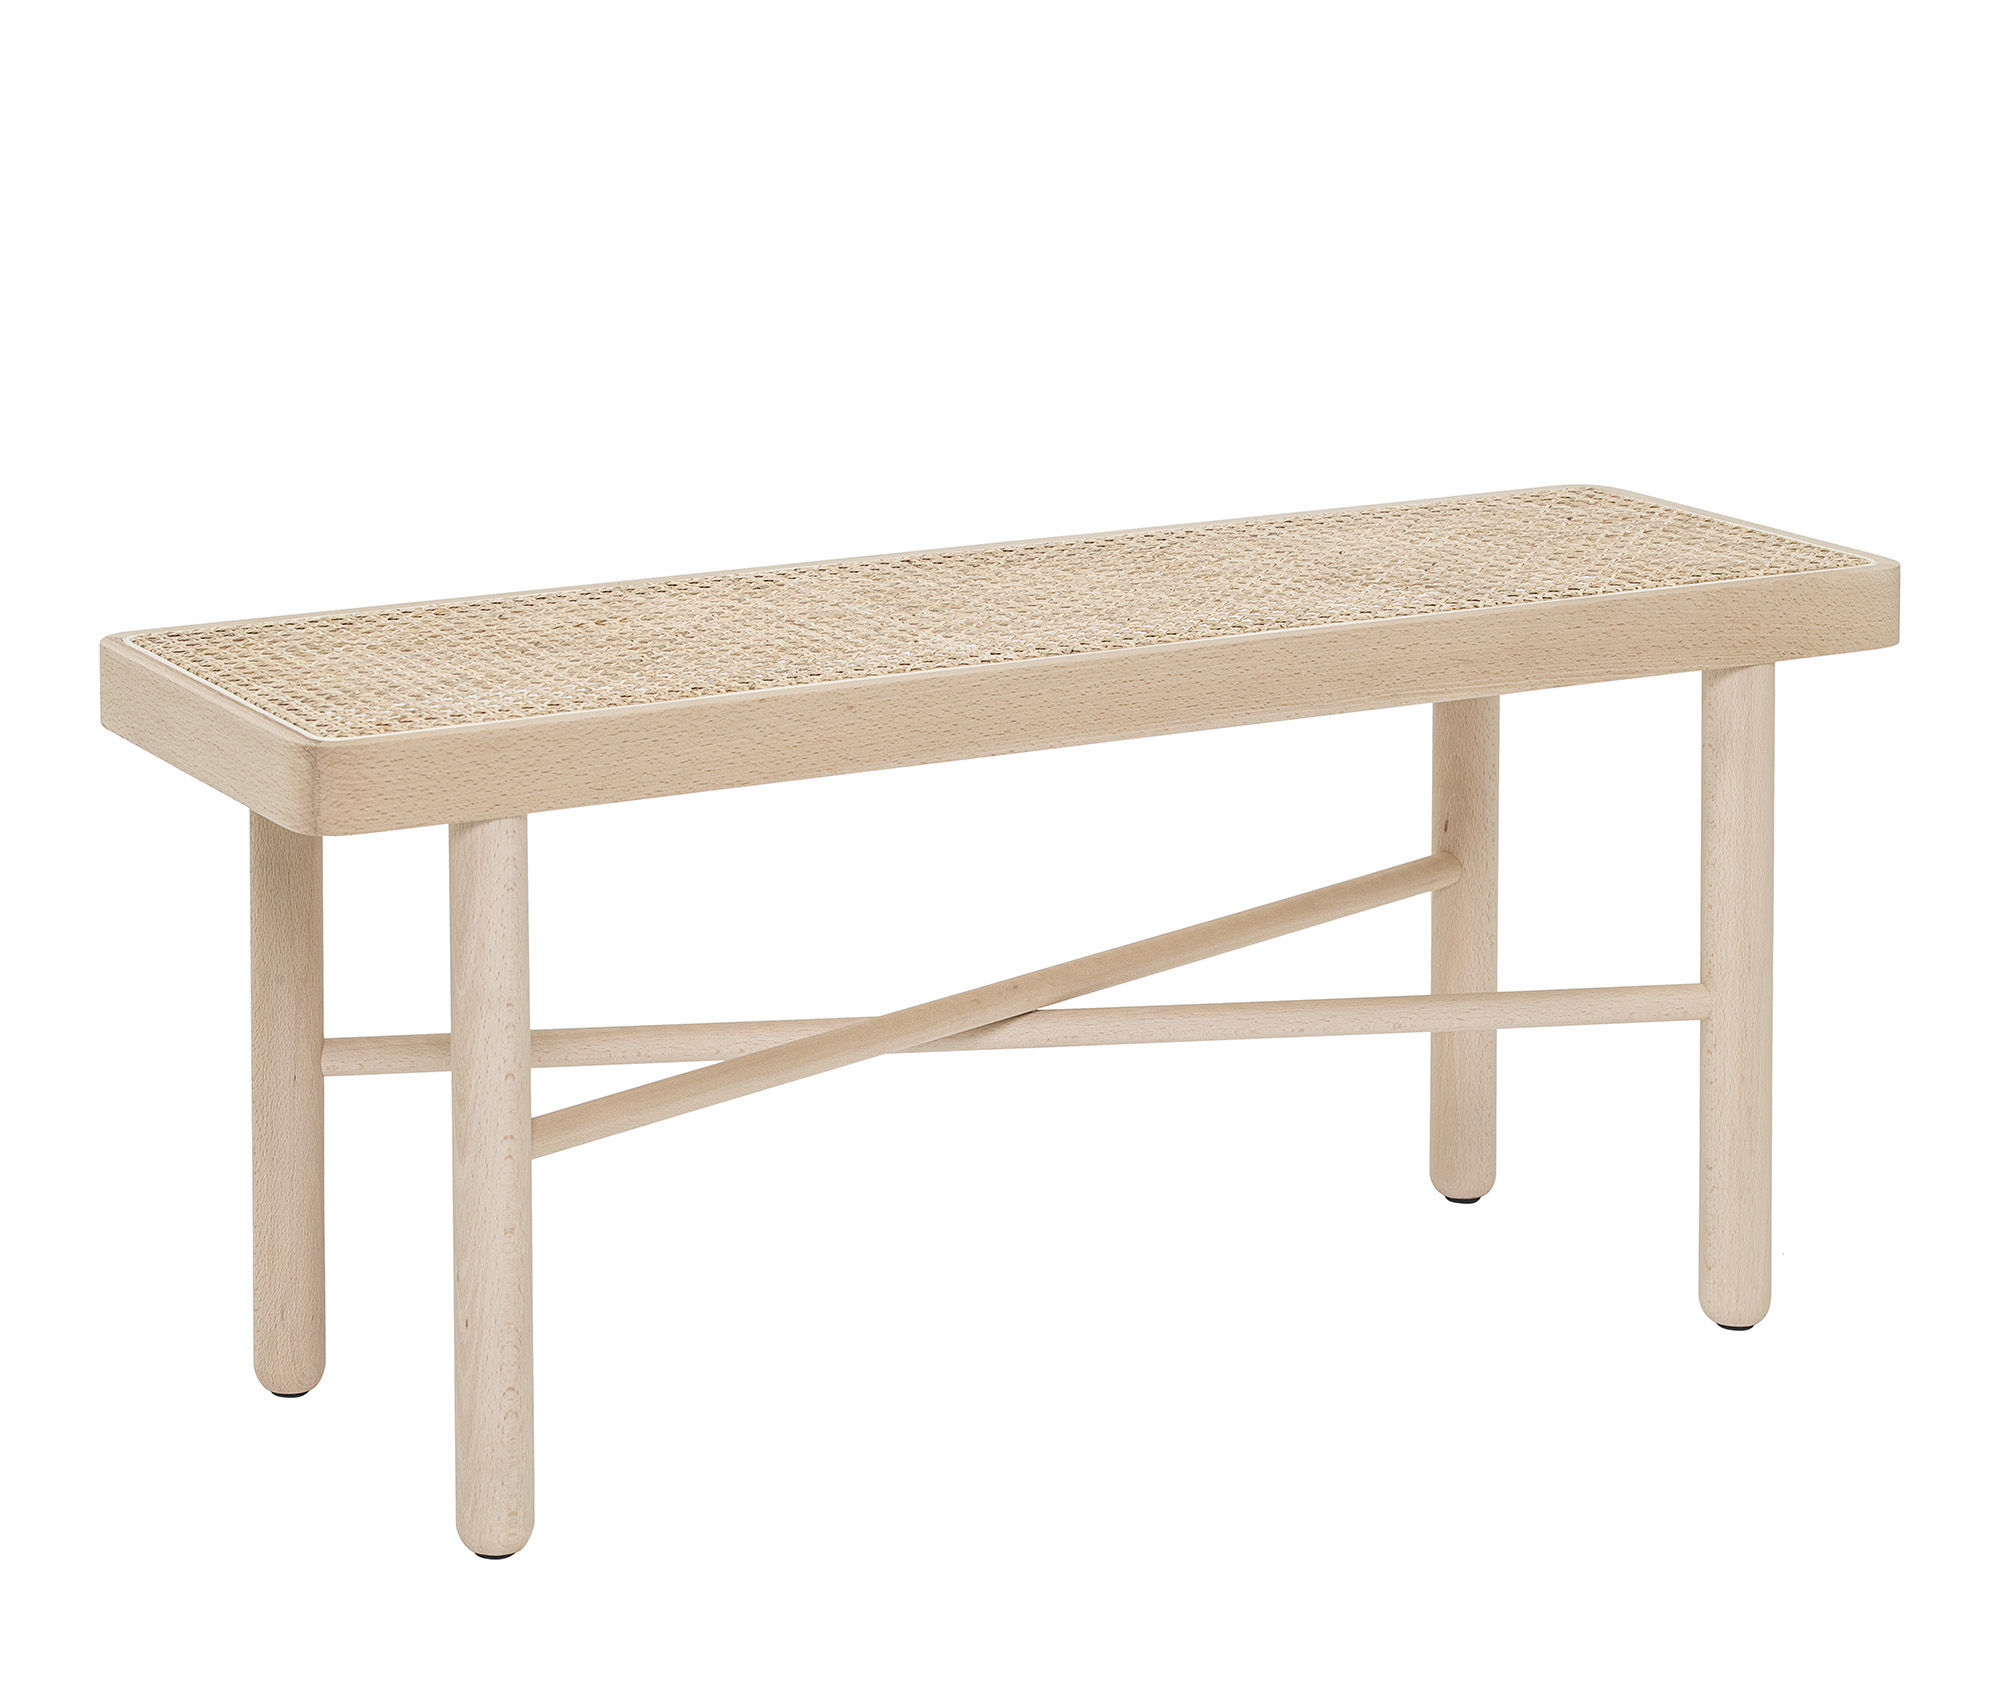 Furniture - Benches - Luna Bench - / Wood & teak - L 100 cm by Bloomingville - Beechwood & natural straw - Natural beechwood, Straw